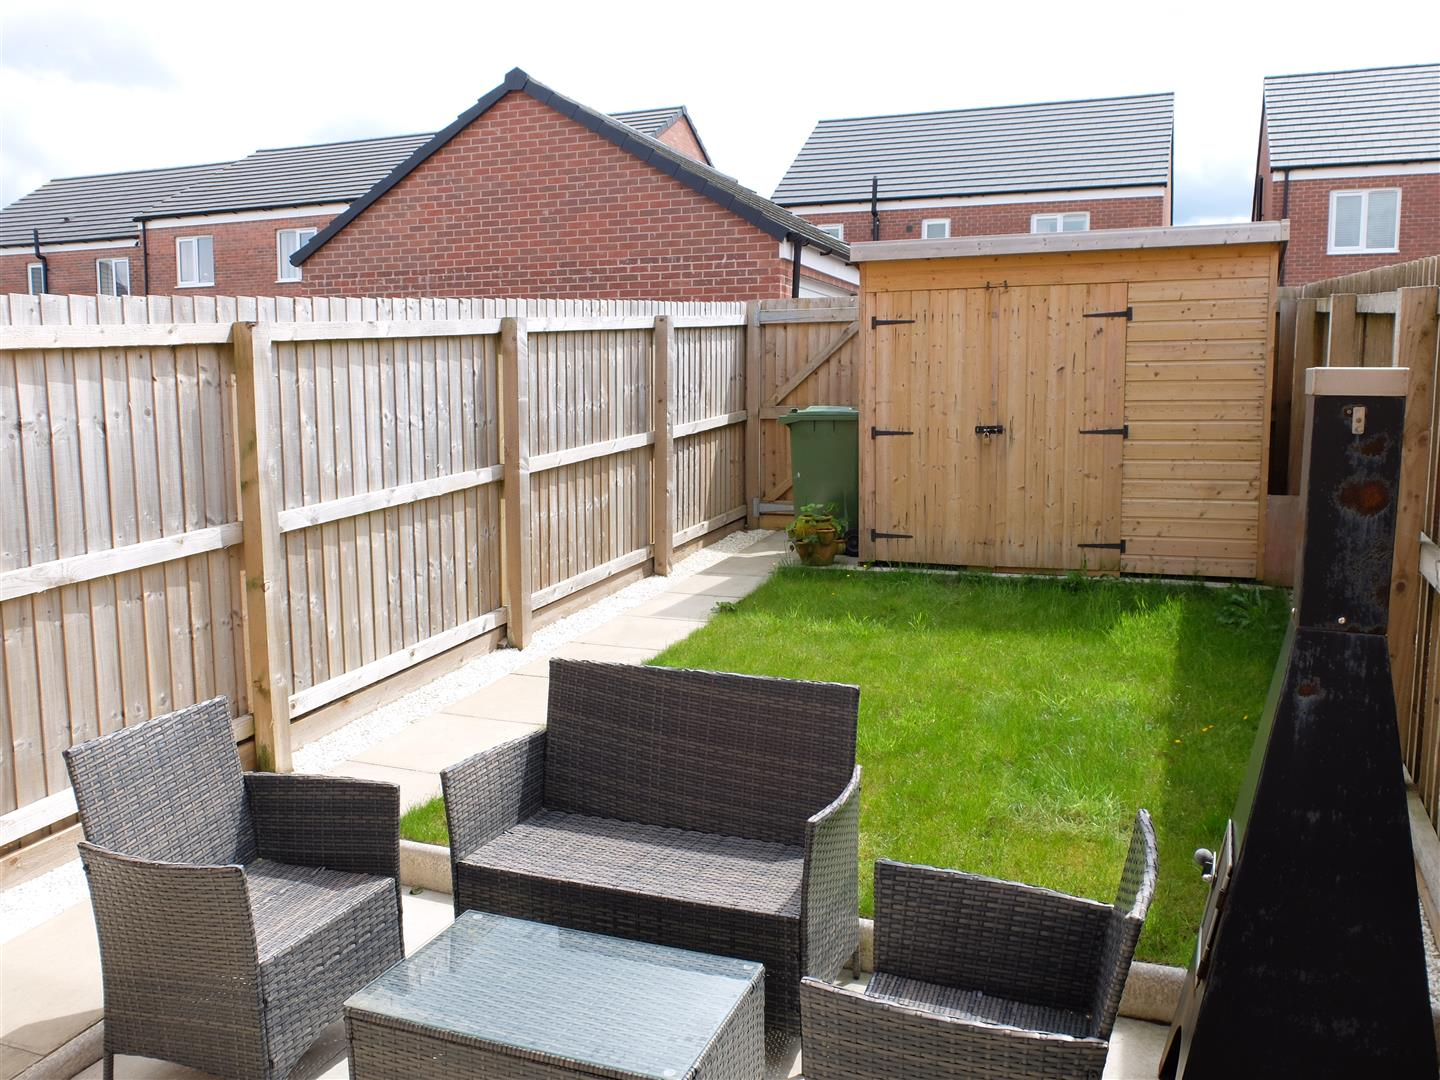 3 Bedrooms House - Mid Terrace For Sale 11 Arnison Close Carlisle